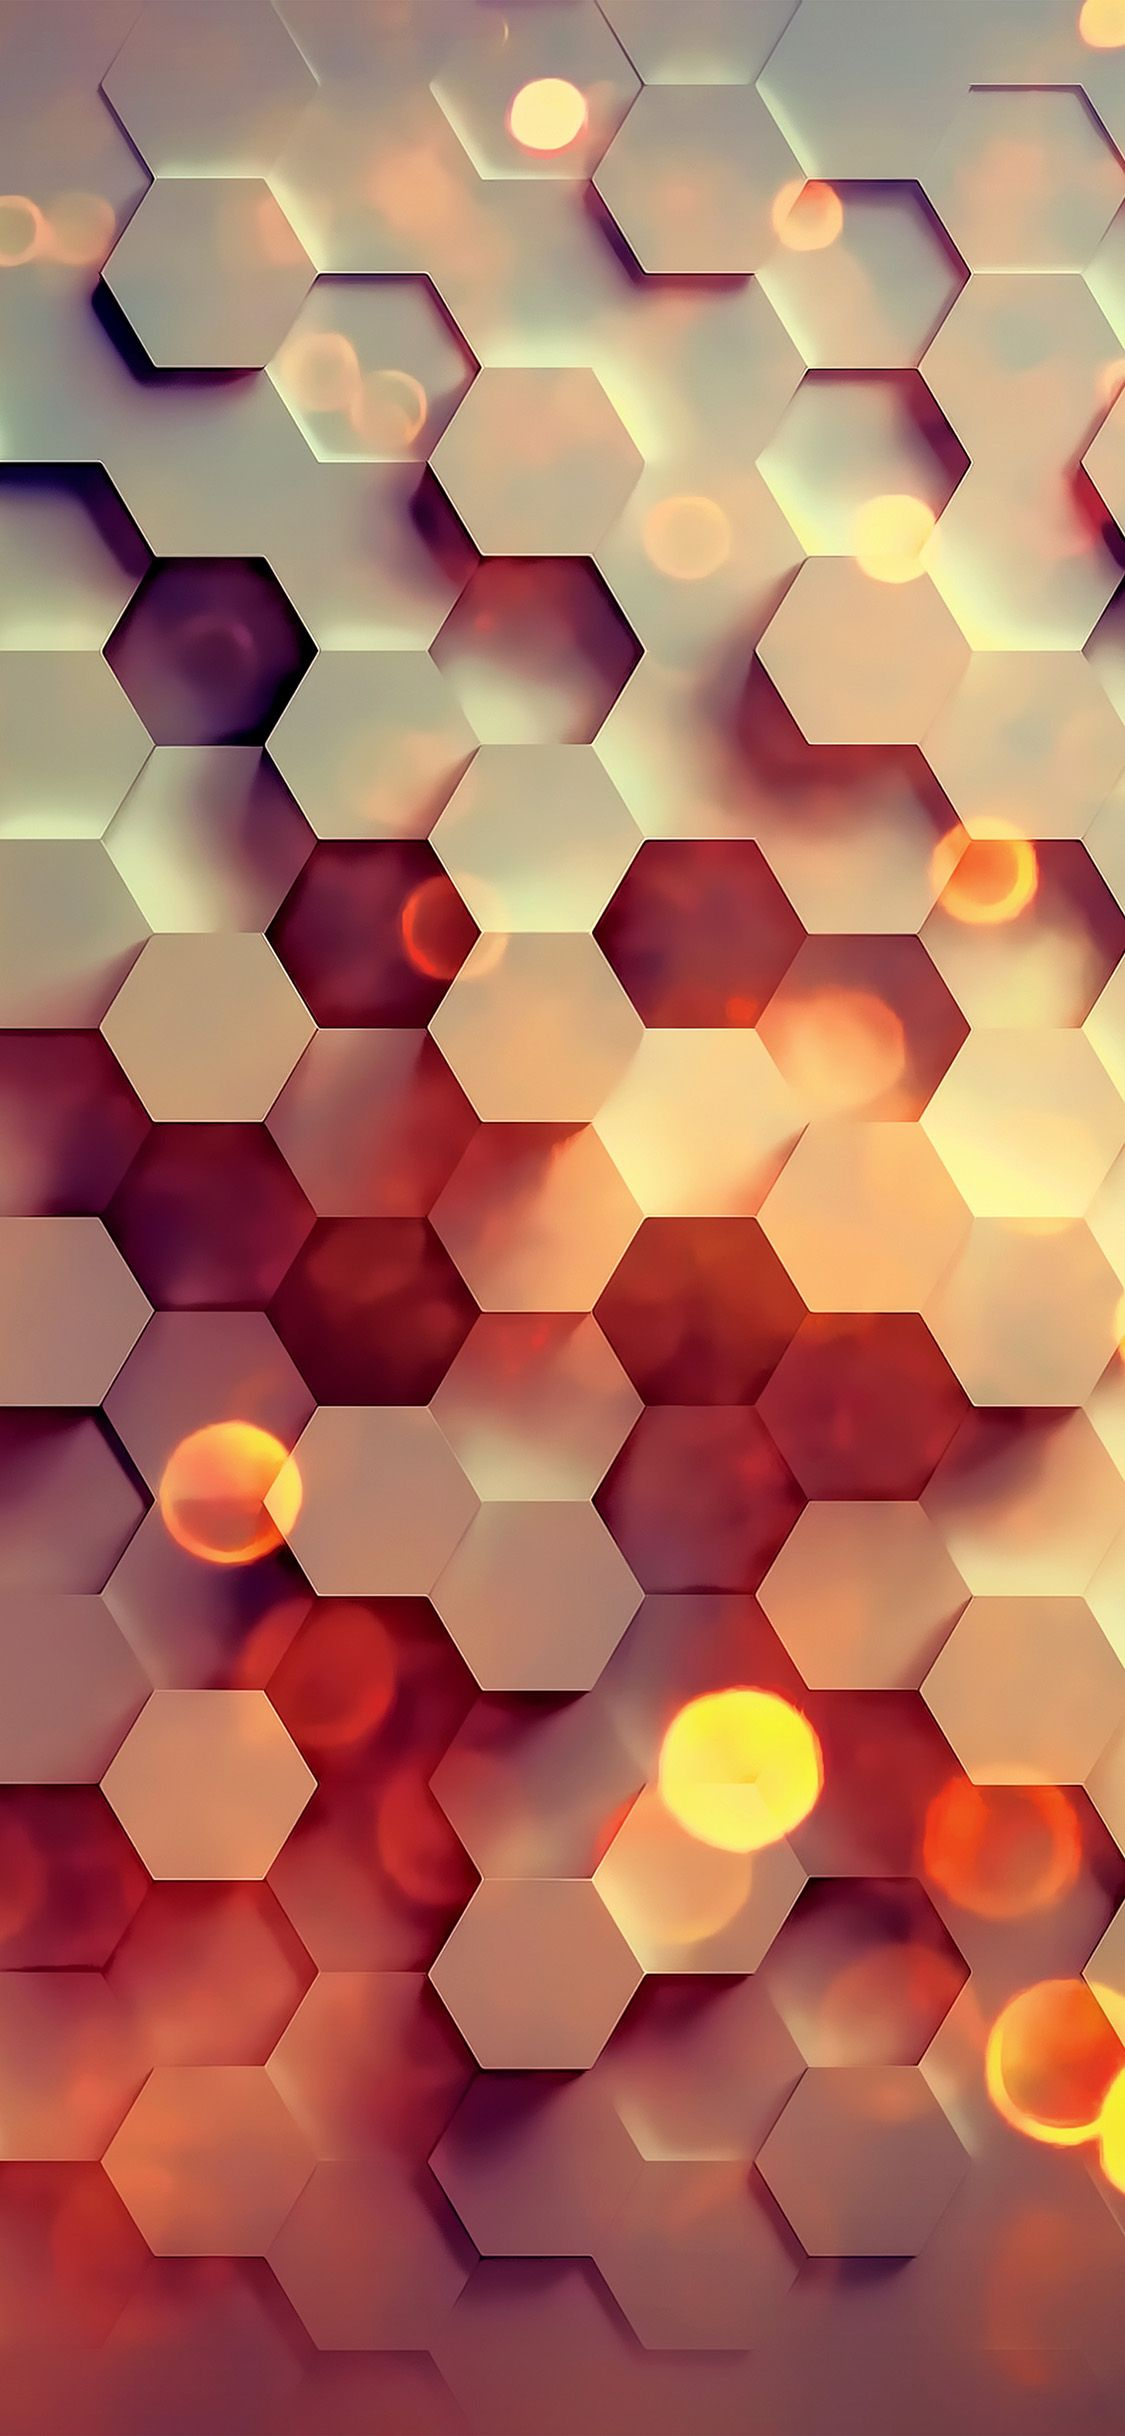 Hexagonal Dream Abstract Backgrounds Desktop Backgrounds Iphone Wallpapers Samsung Galaxy Wallpaper Old